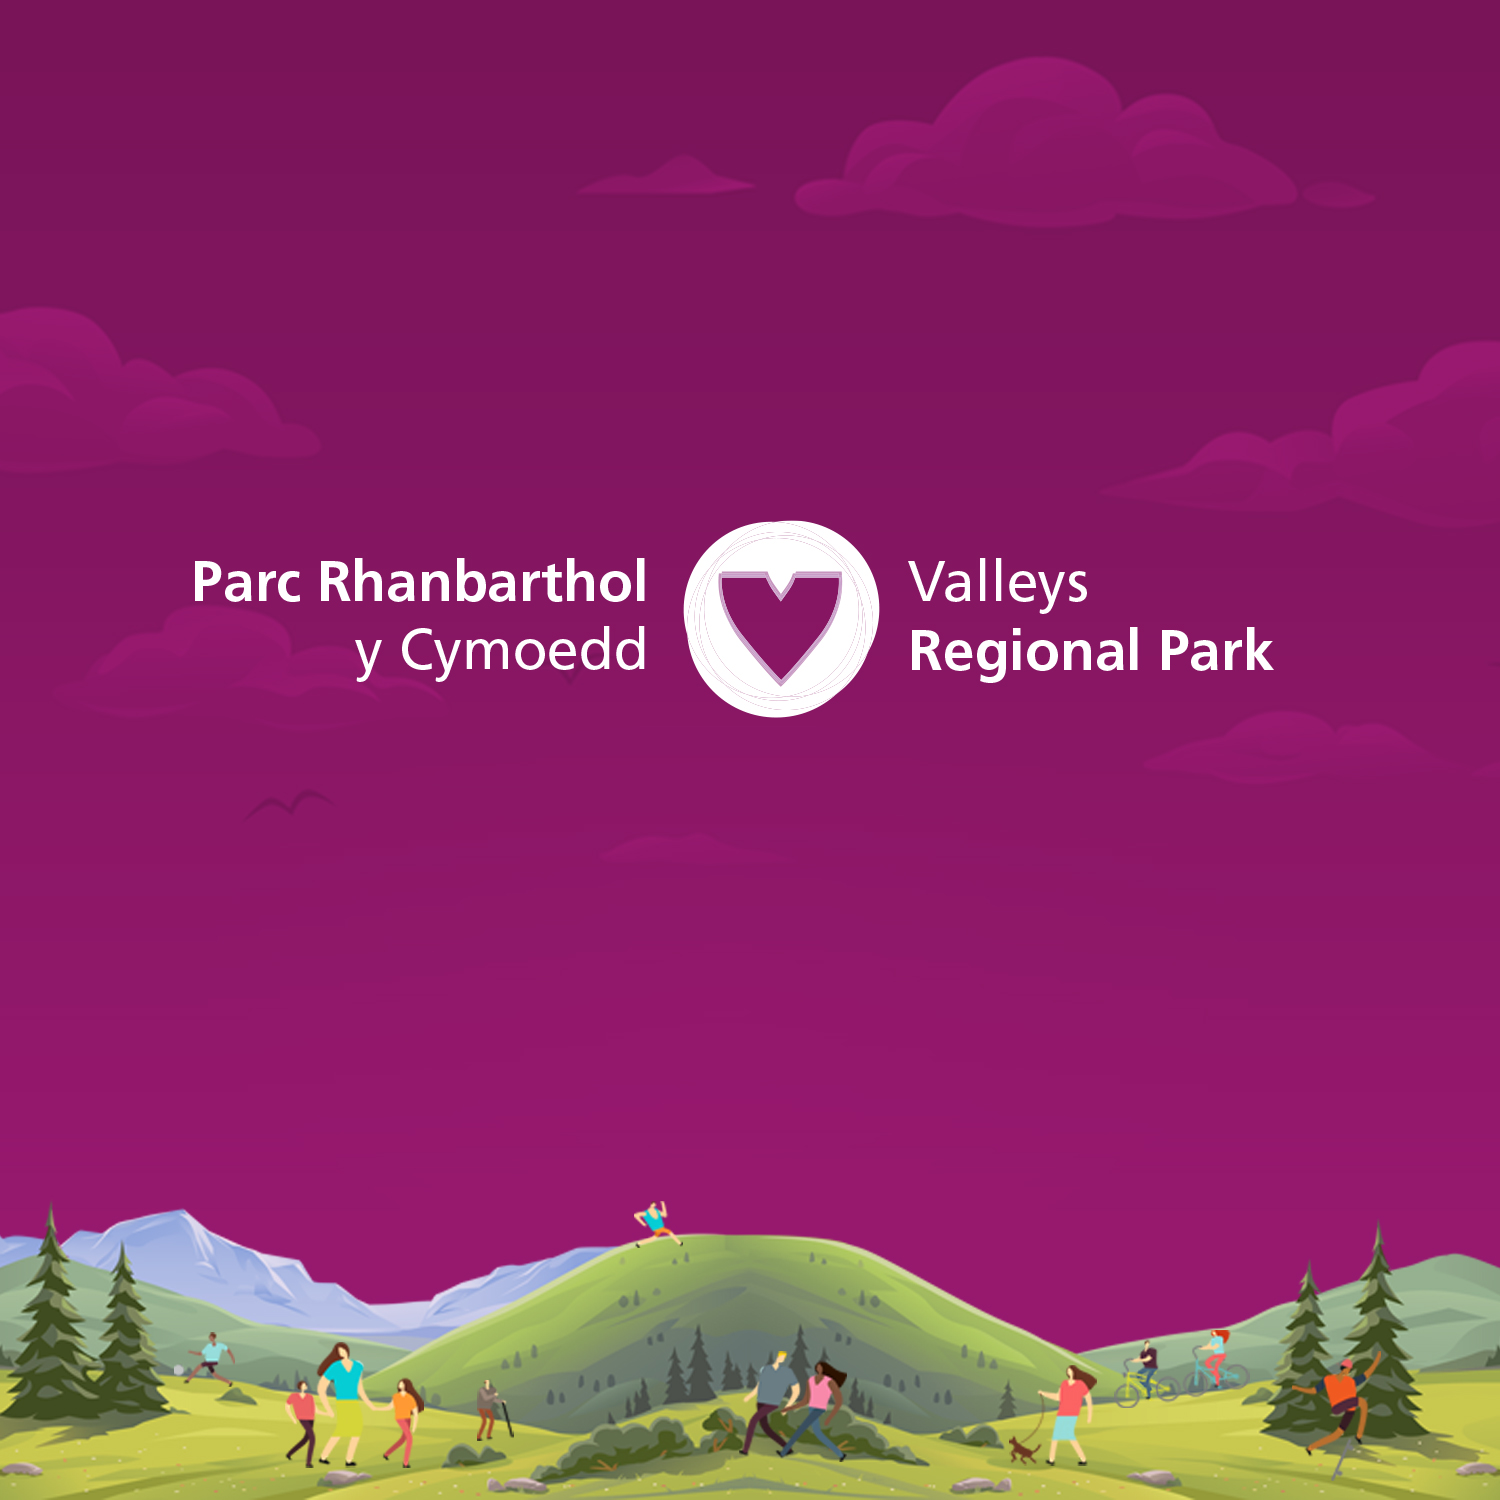 Groundwork Wales Working in Partnership with Valleys Regional Park